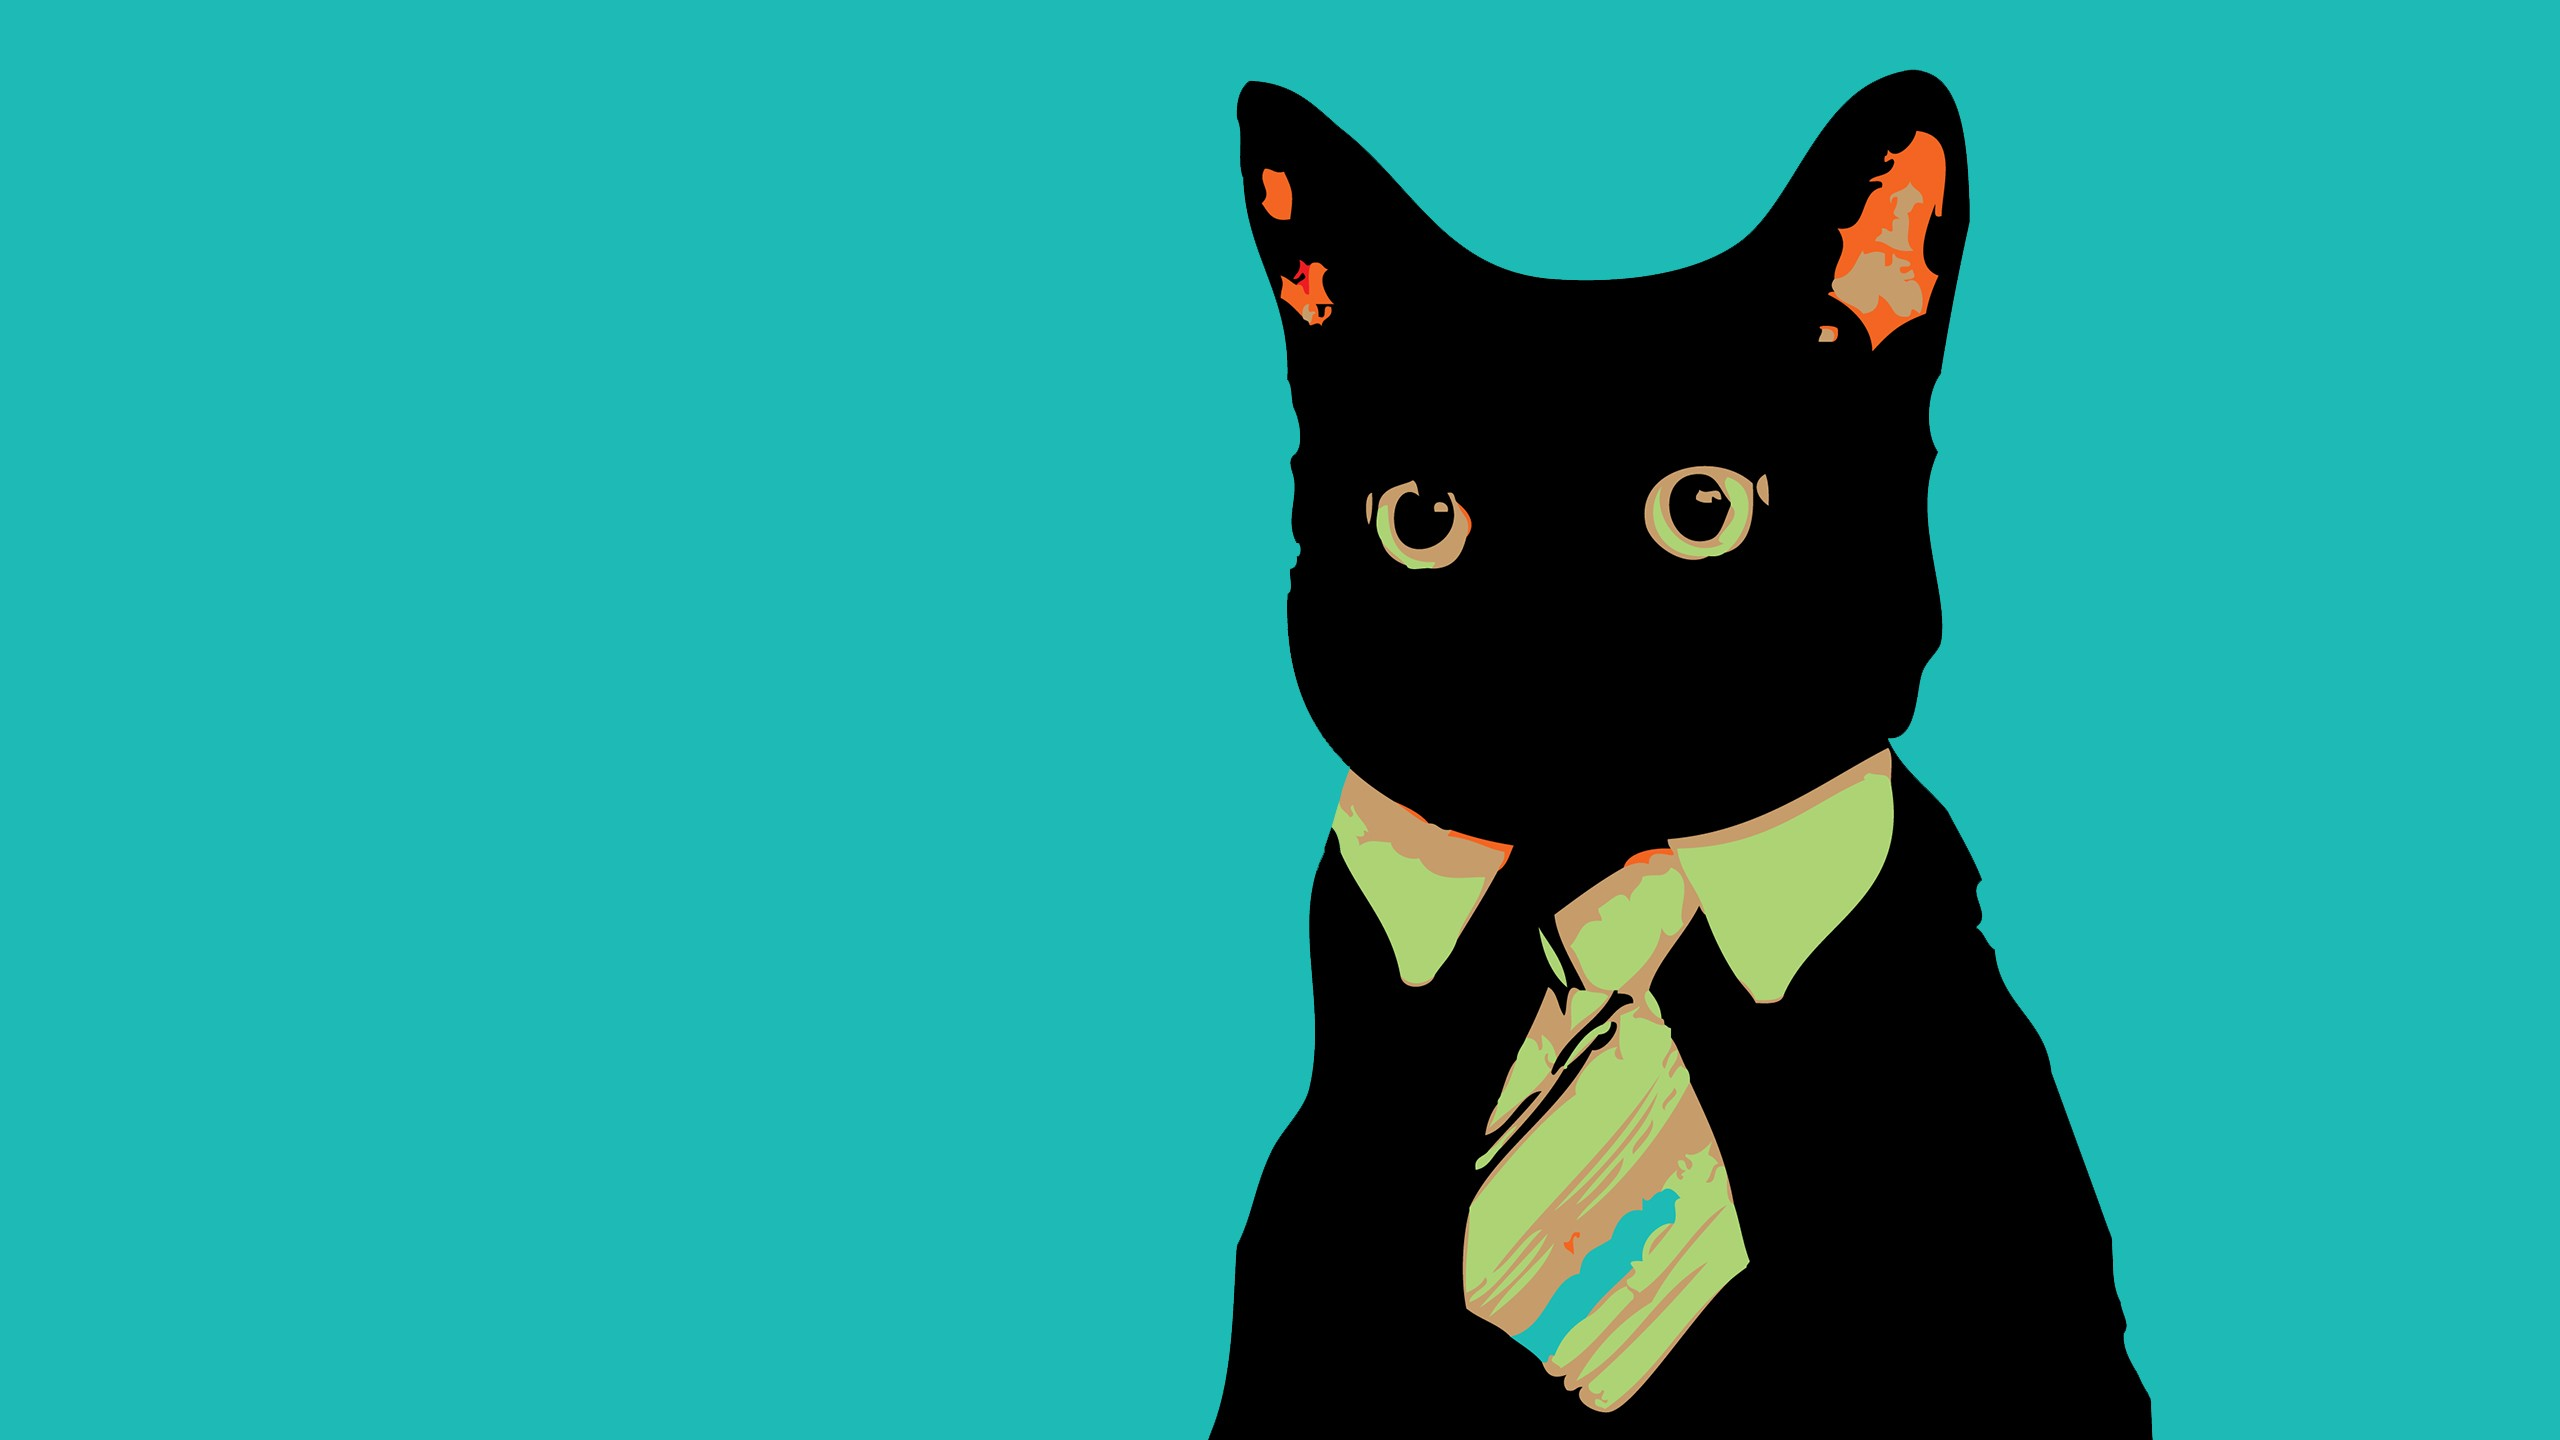 Business Cat Tie Meme